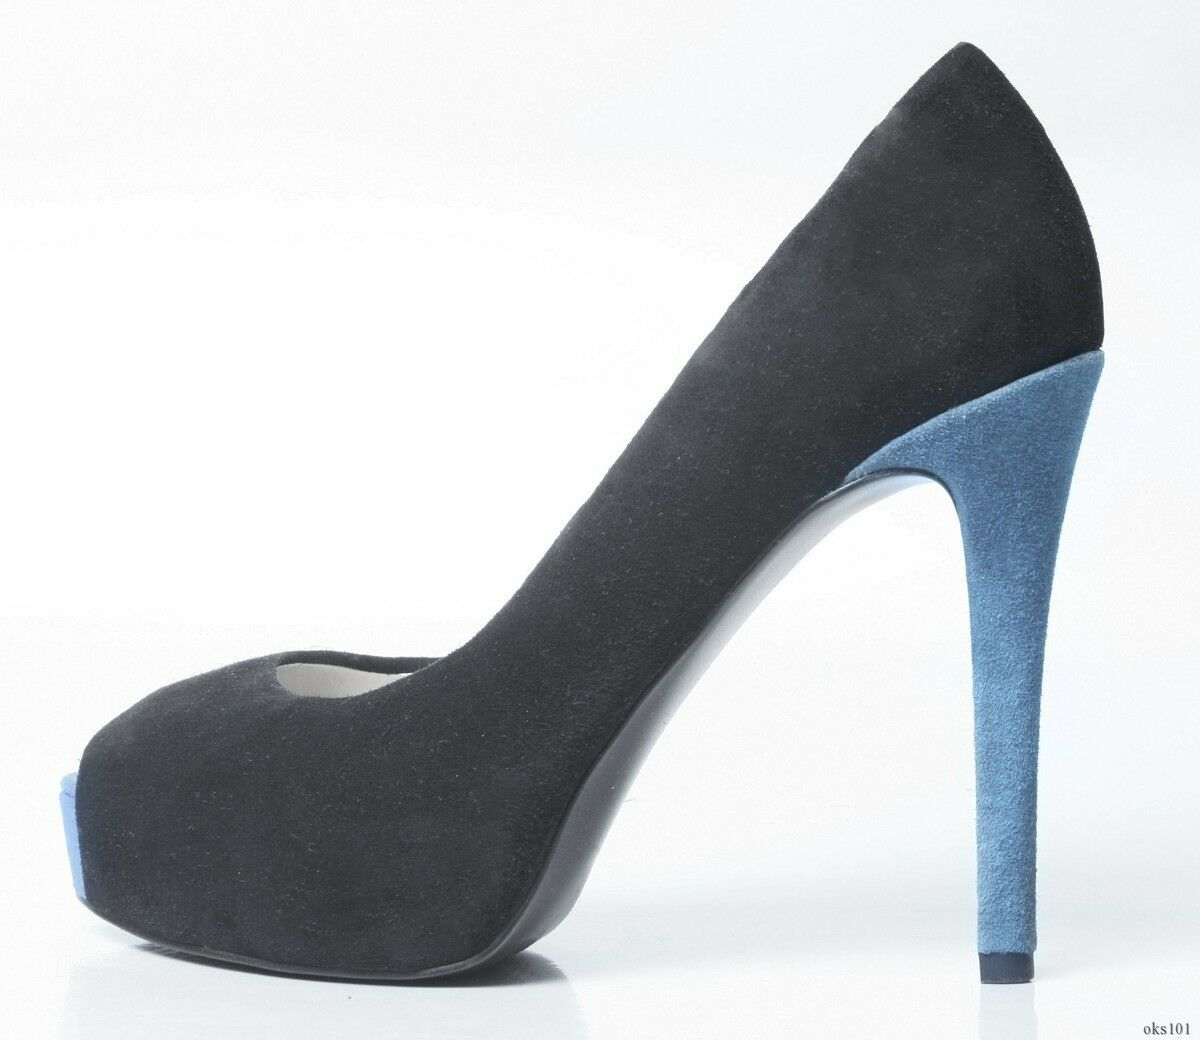 New GUESS GUESS GUESS 'Paches' open-toe black suede bluee heel platforms shoes - SEXY 382e88